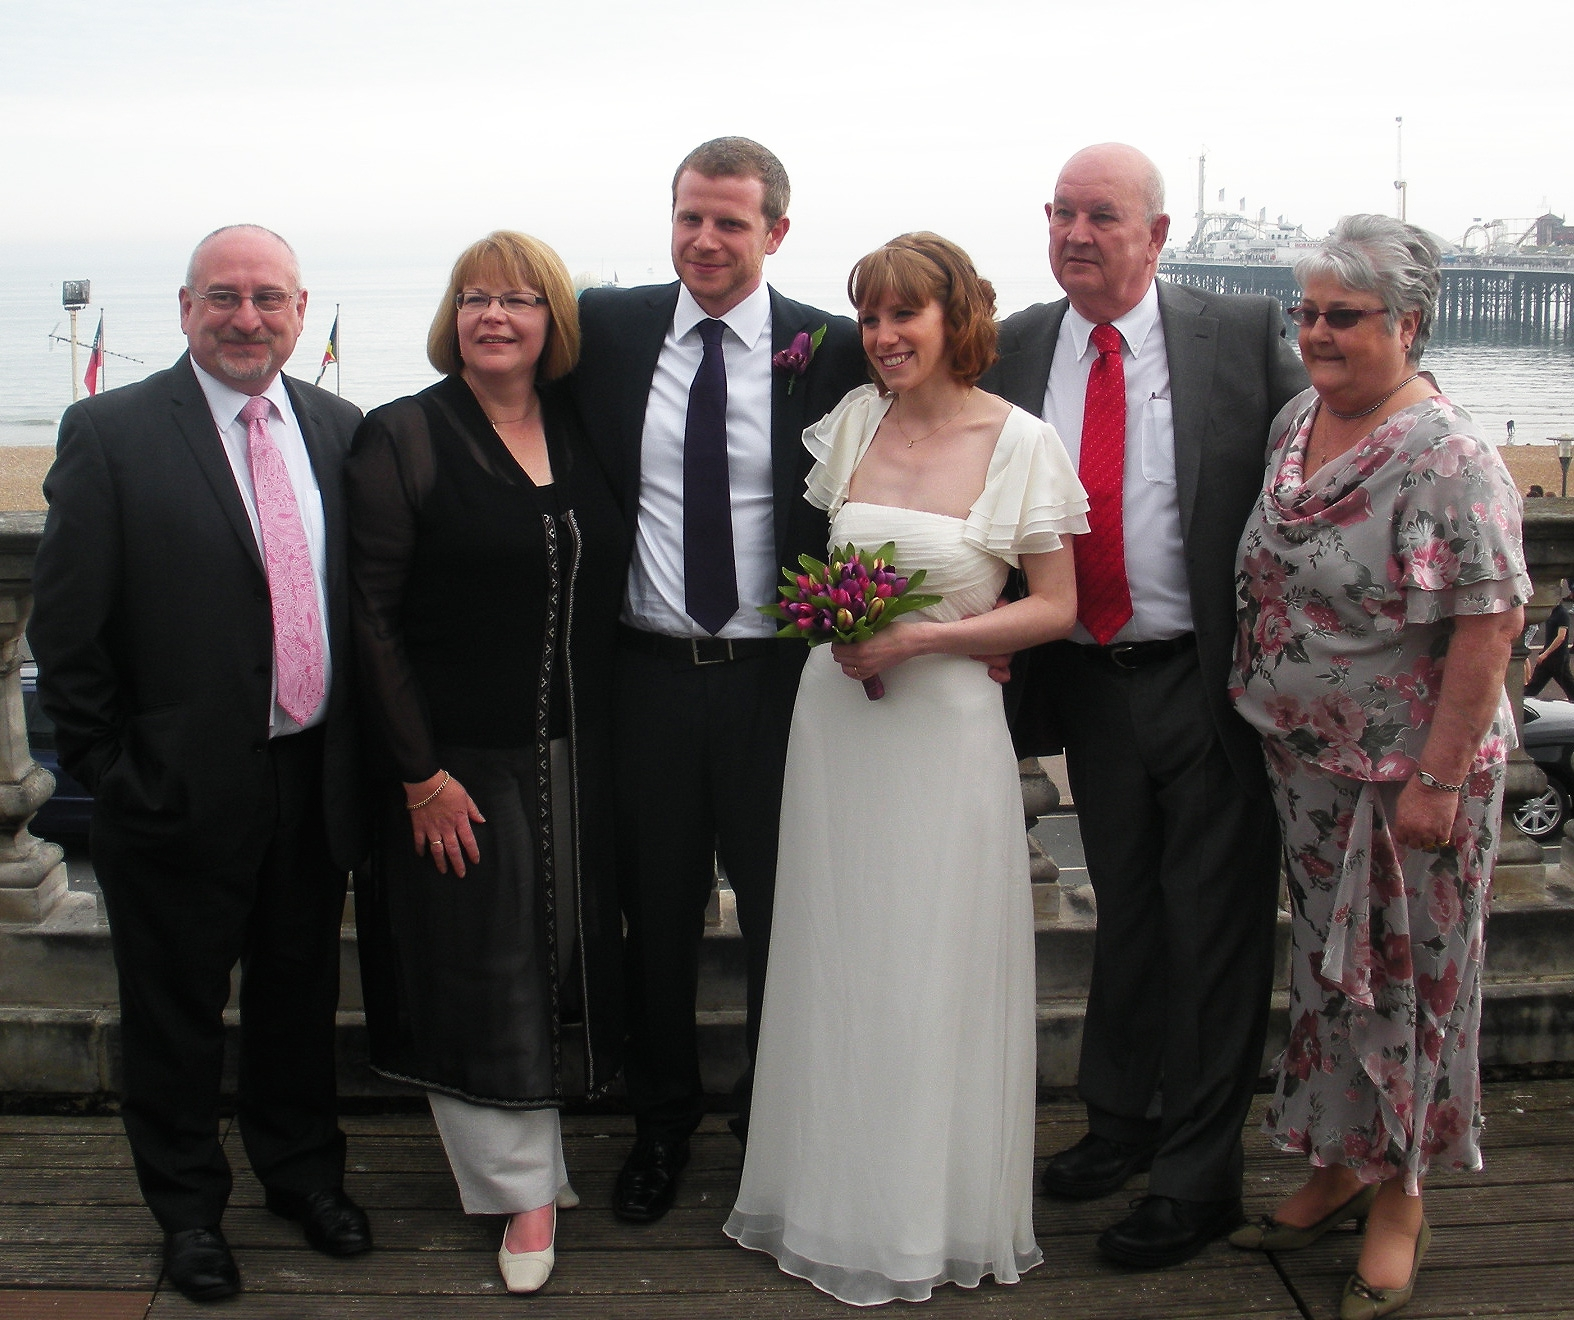 James Aiken (A. 1998-03), son of John & Fiona Aiken (A. 1976-81/F. 1979-81) and brother of Tom Aiken (A. 2003-08), married Rachel Tripp in Brighton on Saturday 16th April